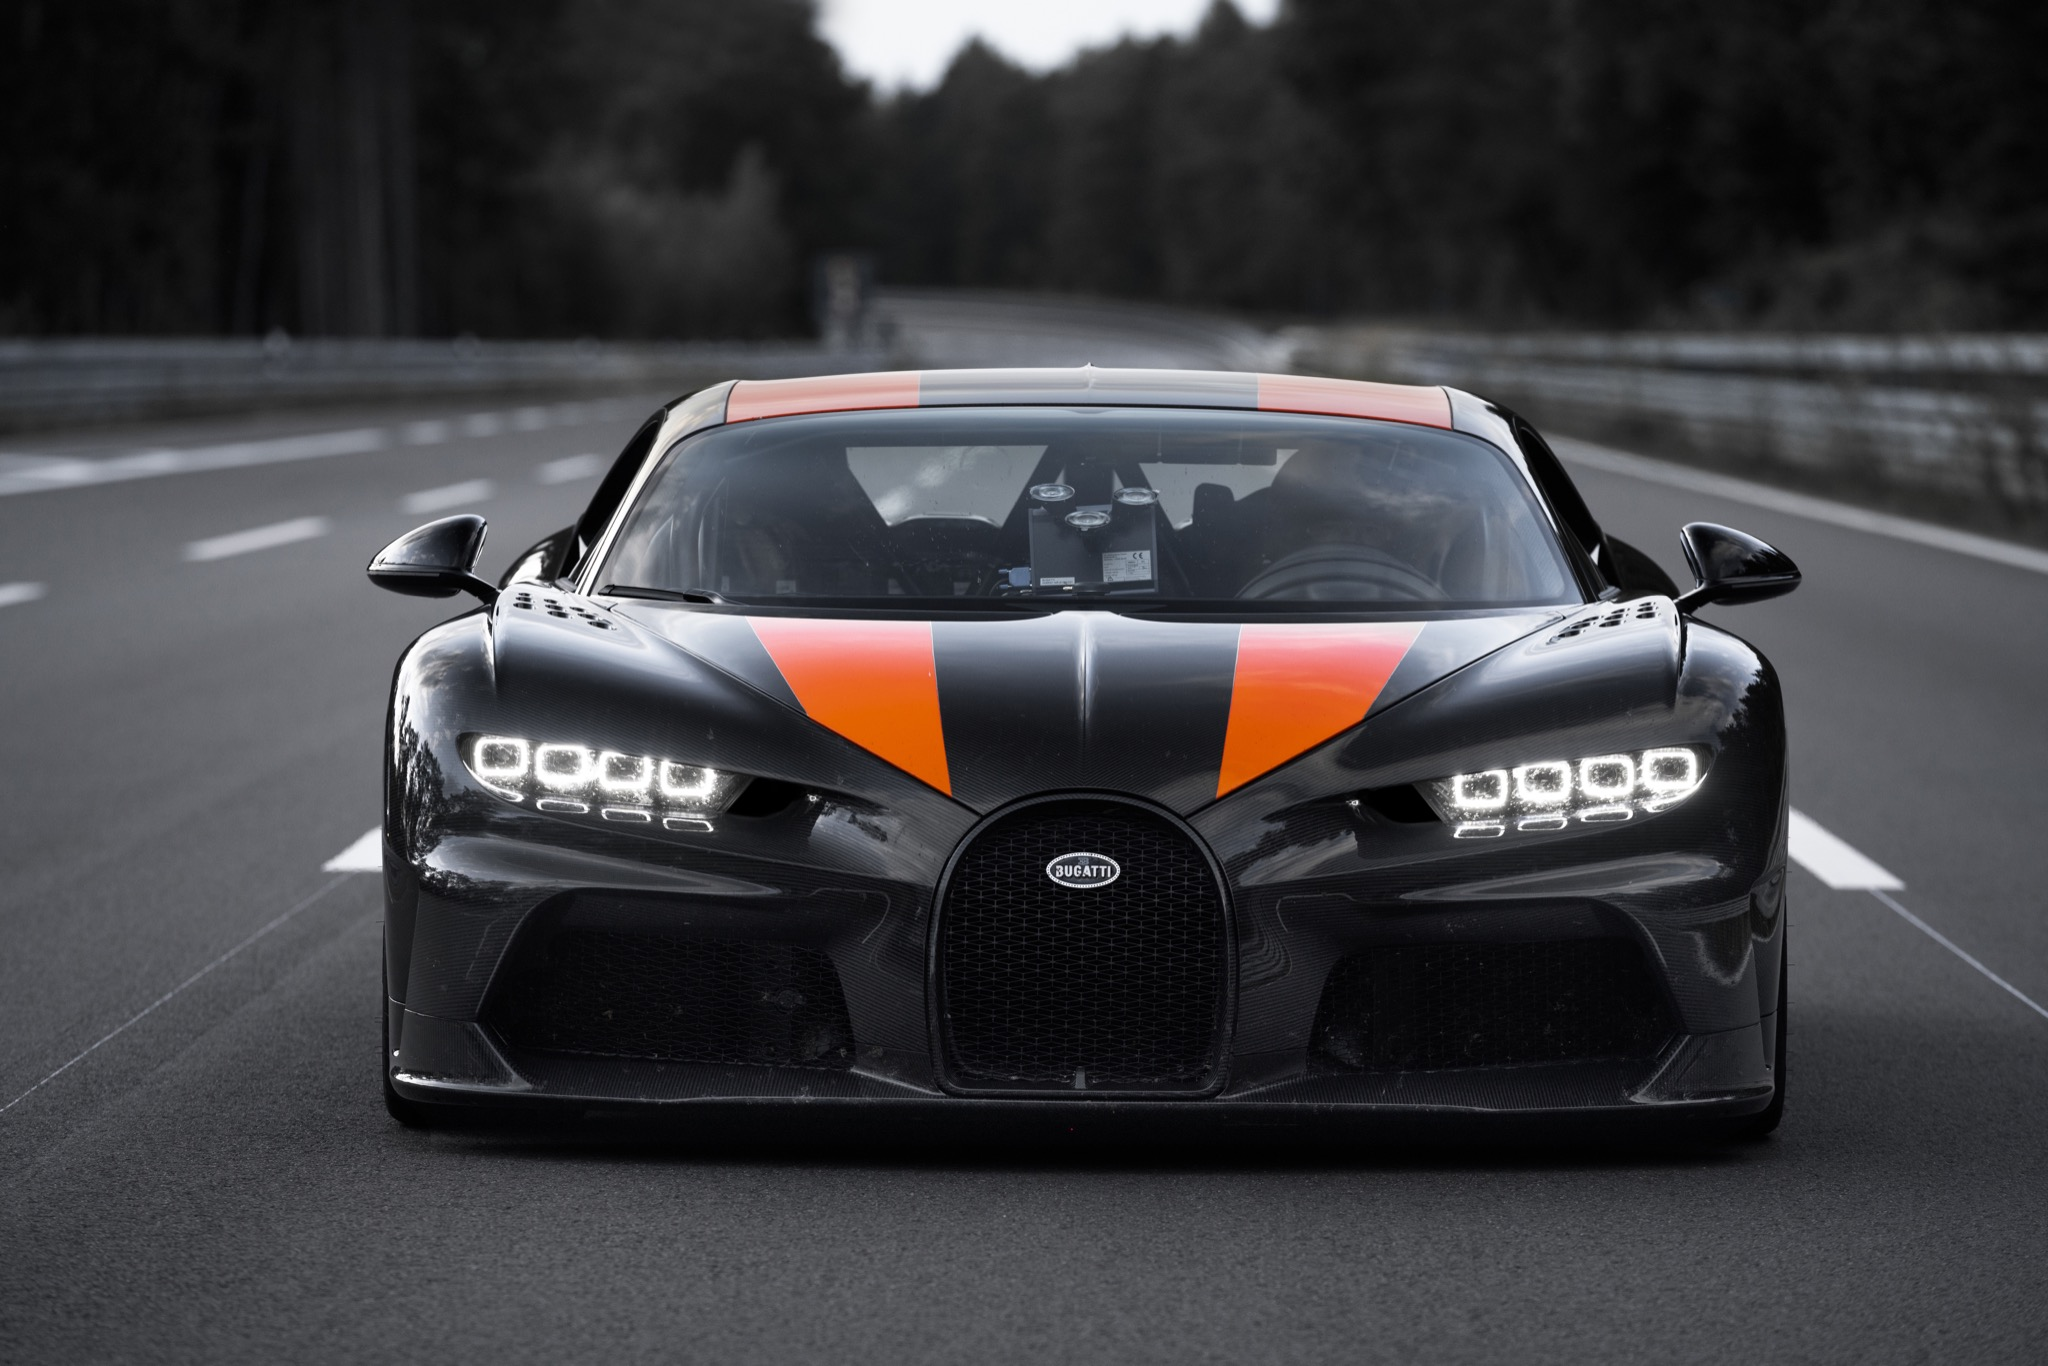 Bugatti found out just how fast the Chiron is, flat-out: 305